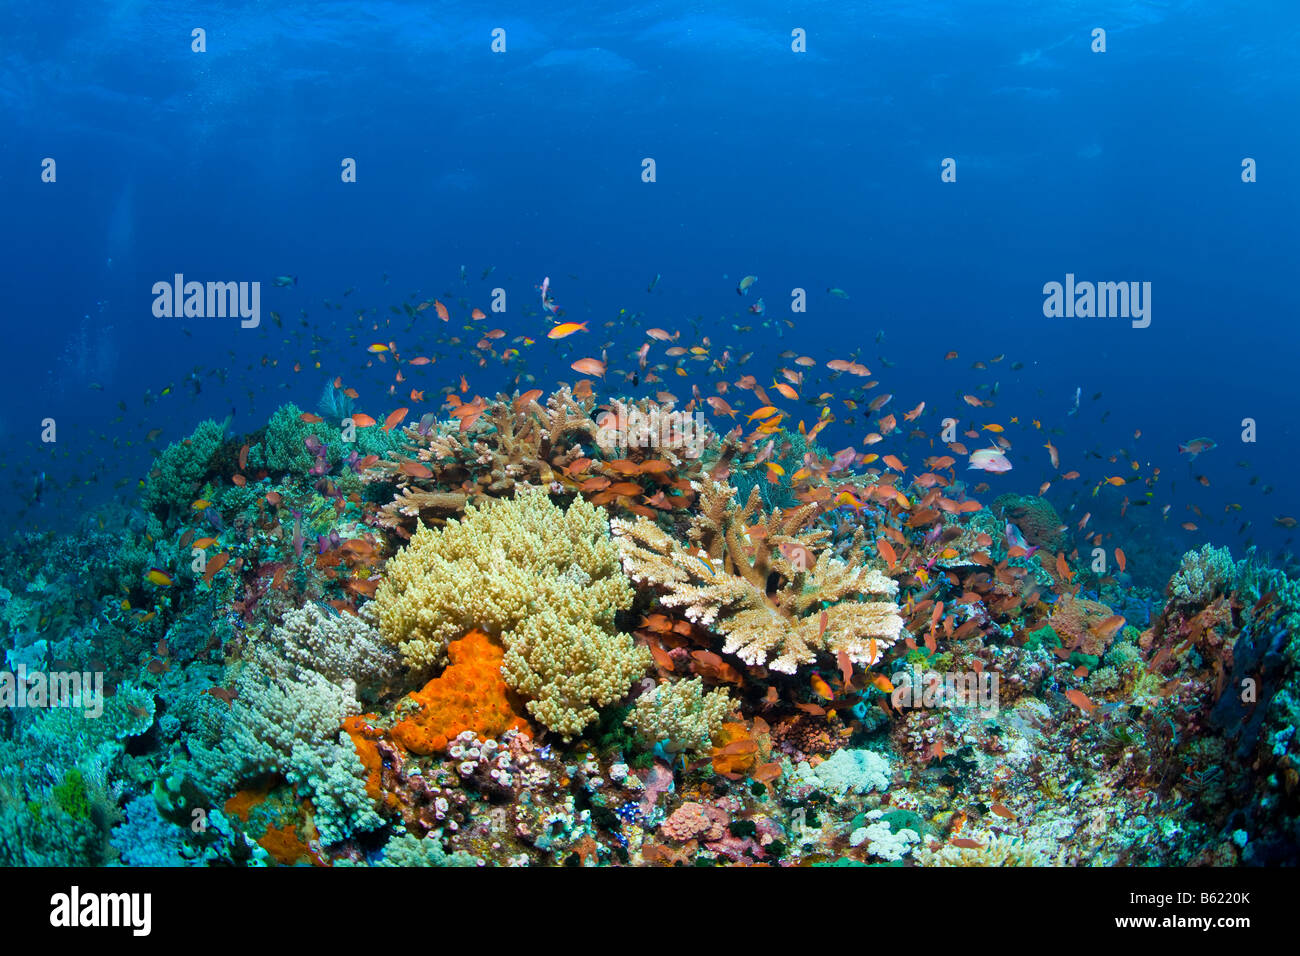 Colourful coral reef with Anthias (Anthiinae), Indonesia, South East Asia - Stock Image